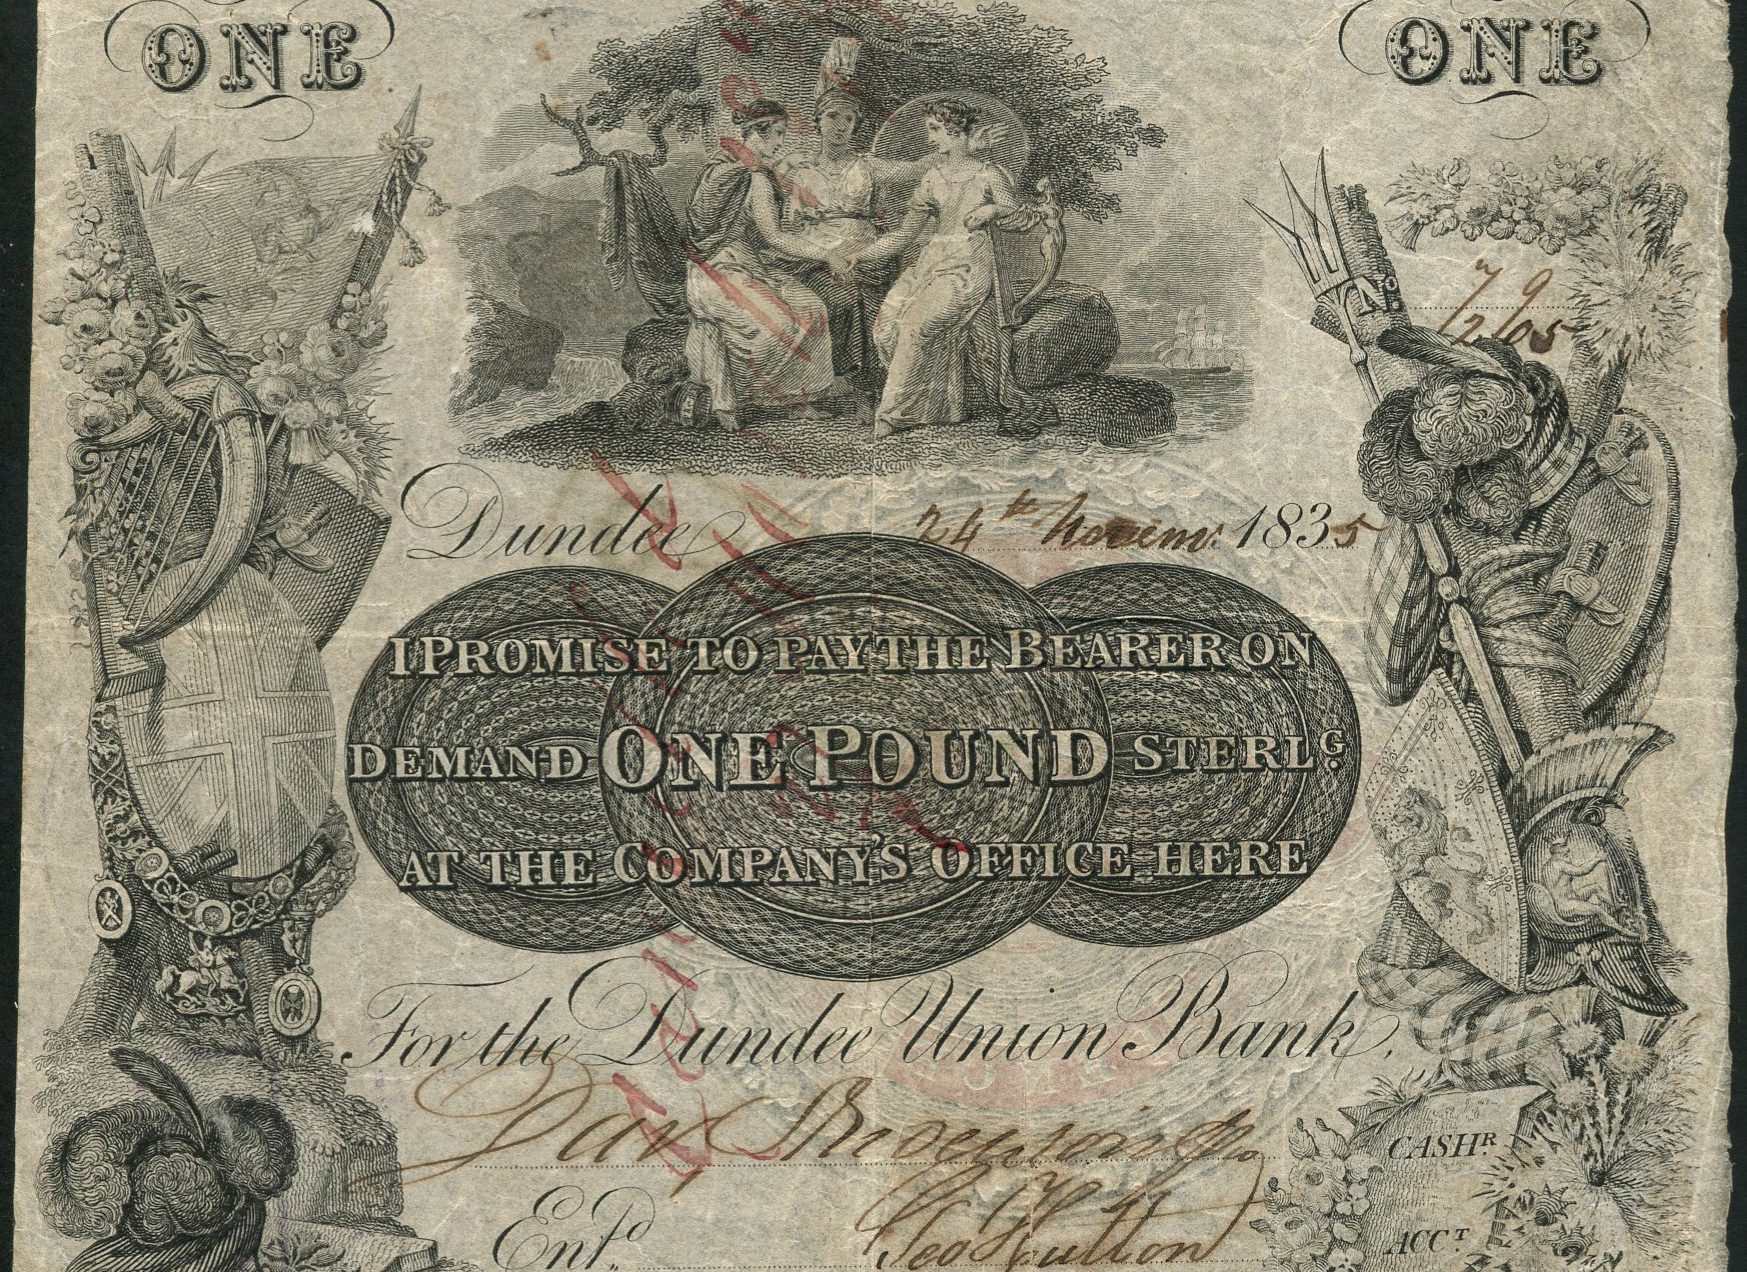 Dundee Union Bank one pound note